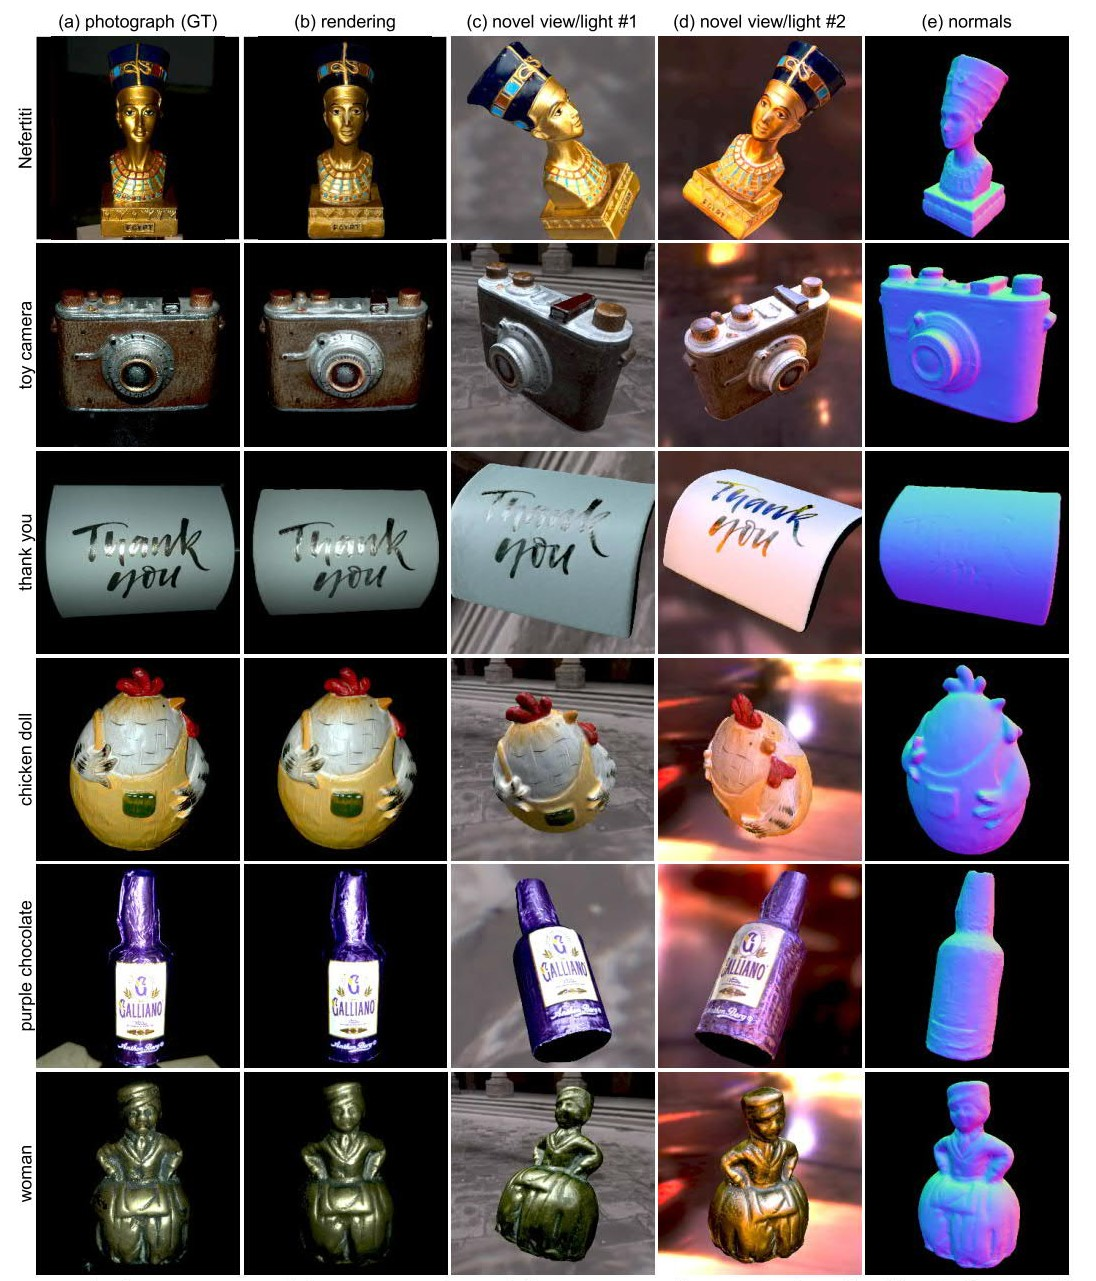 Some of the objects rendered into 3D using the methodology presented in the paper. Image via ACM Transactions on Graphics